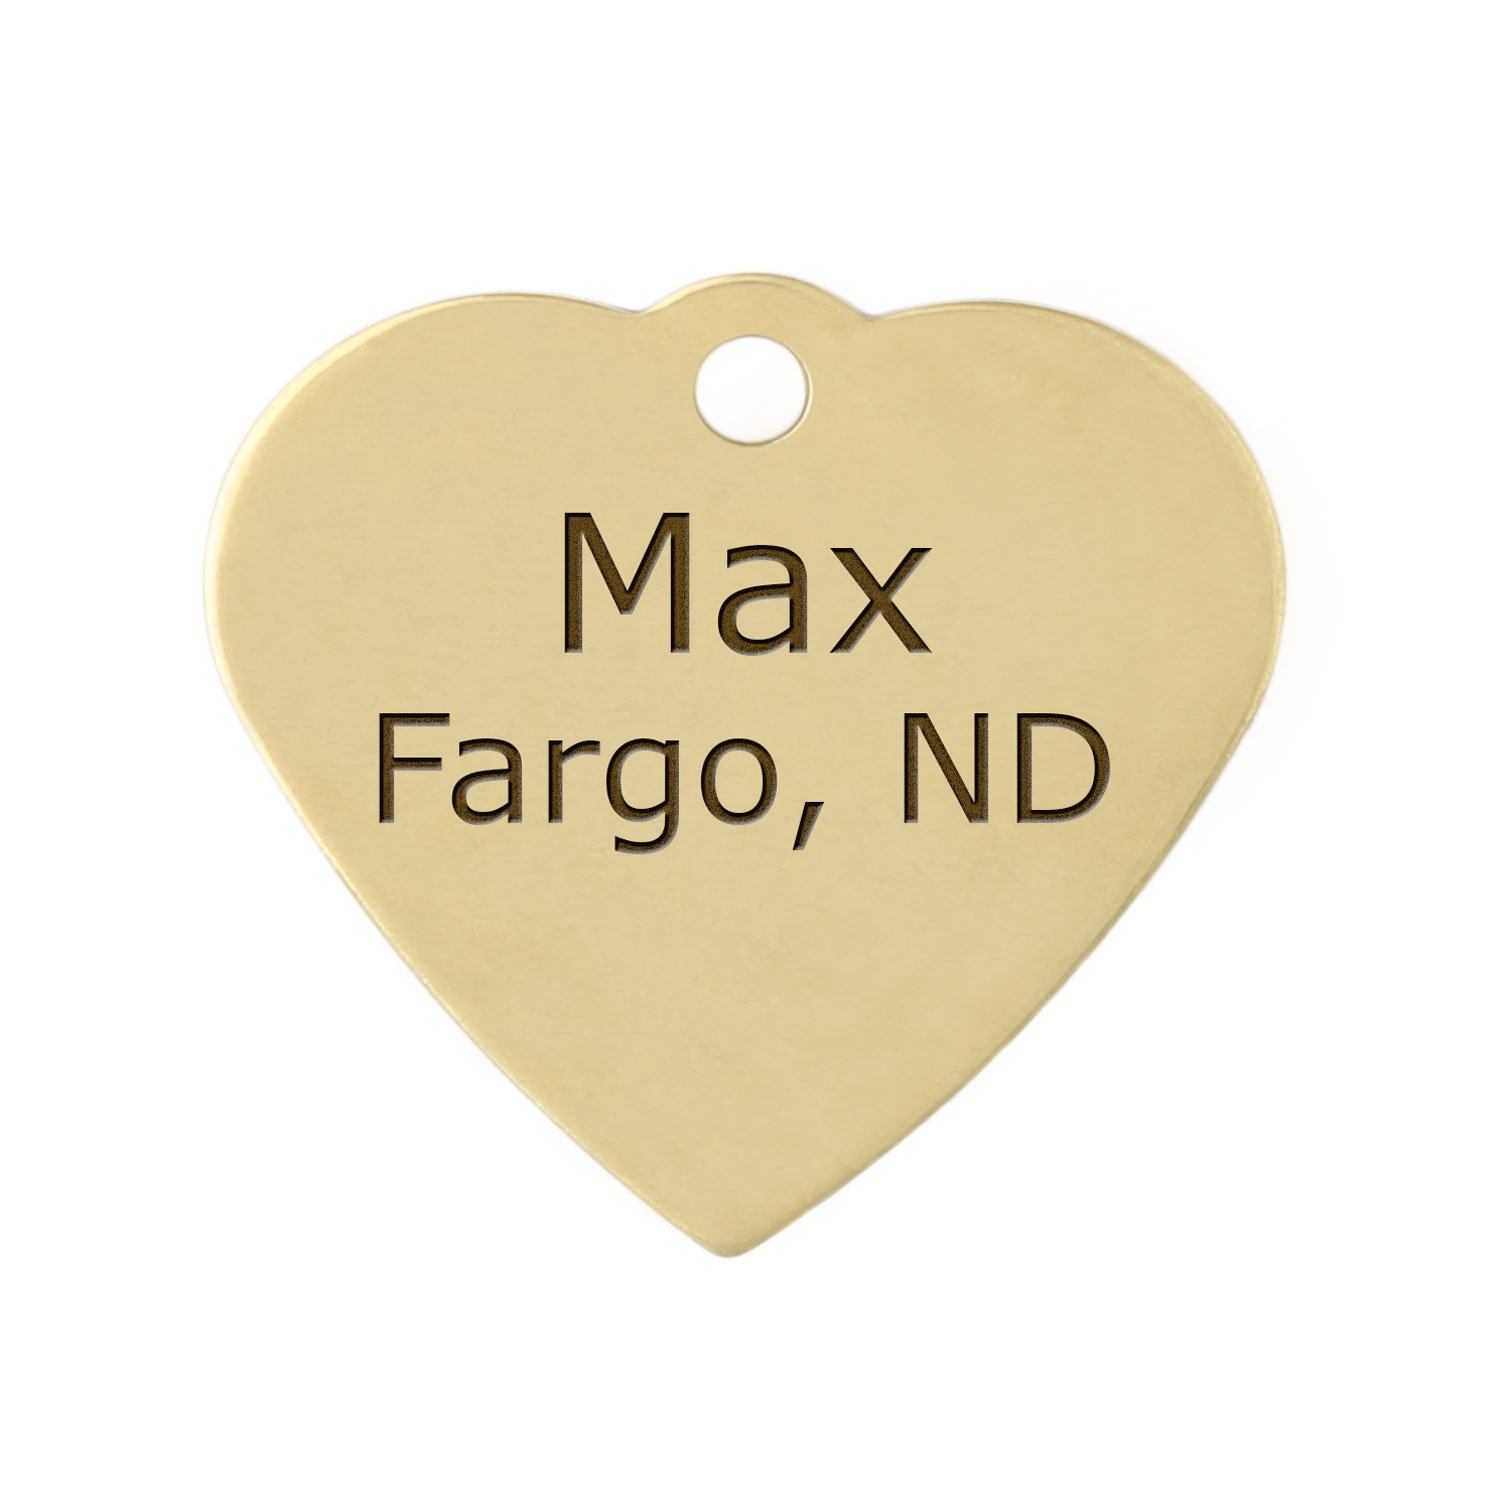 Double Sided Brass Heart Dog ID Tag - Personalized Laser Engraving with S-Hook and Split Ring